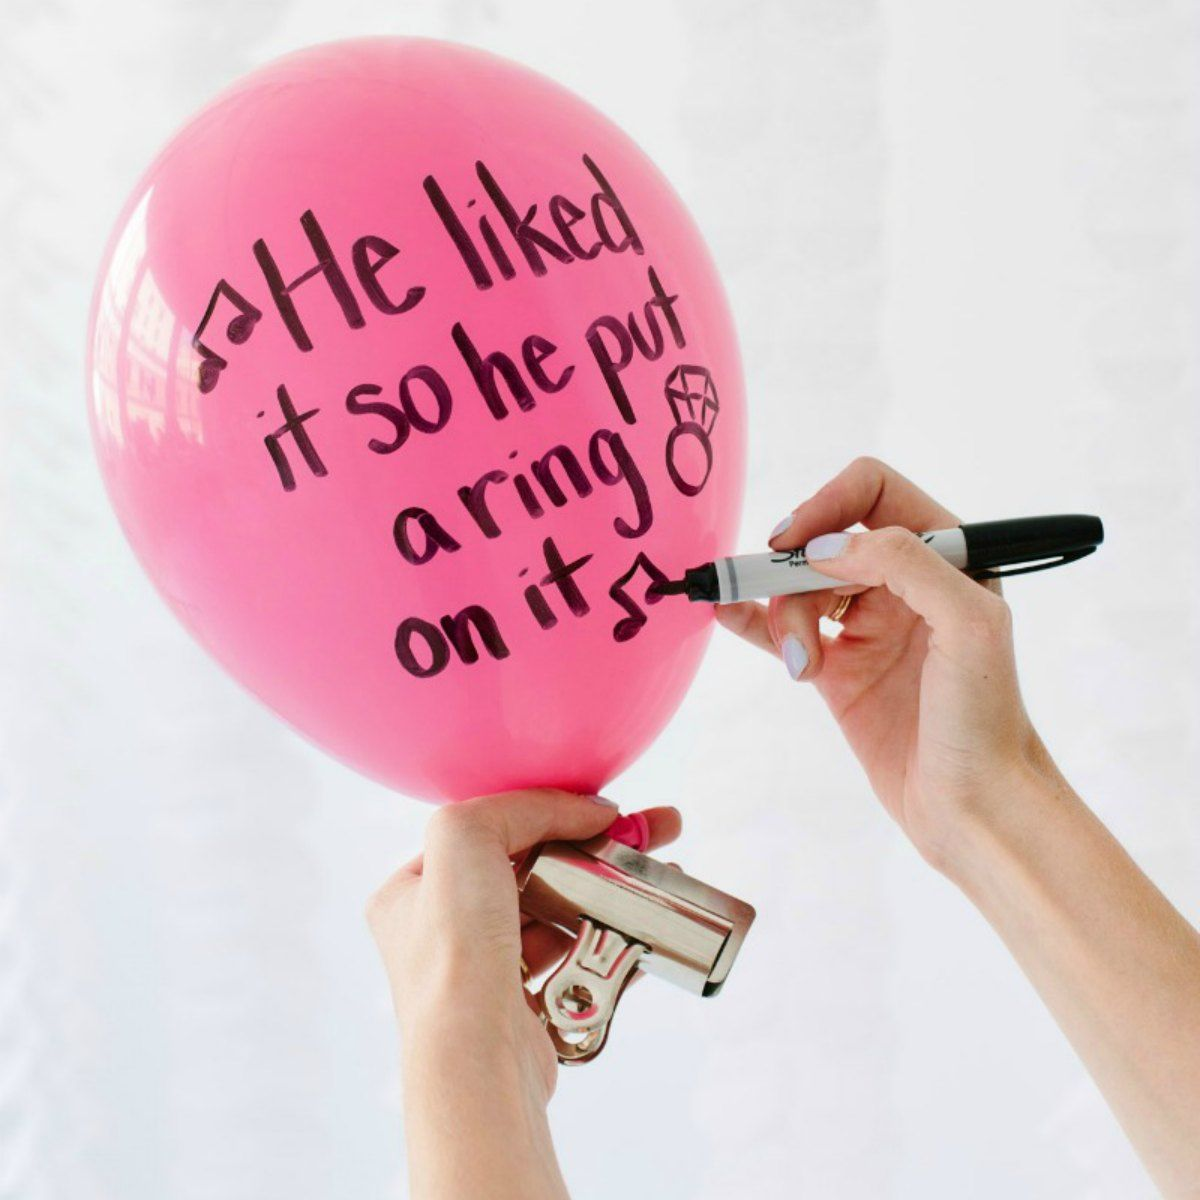 Learn How To Make These Fun Hen Party Balloons In 4 Easy Steps A Diy With Minimal Effort And Cost